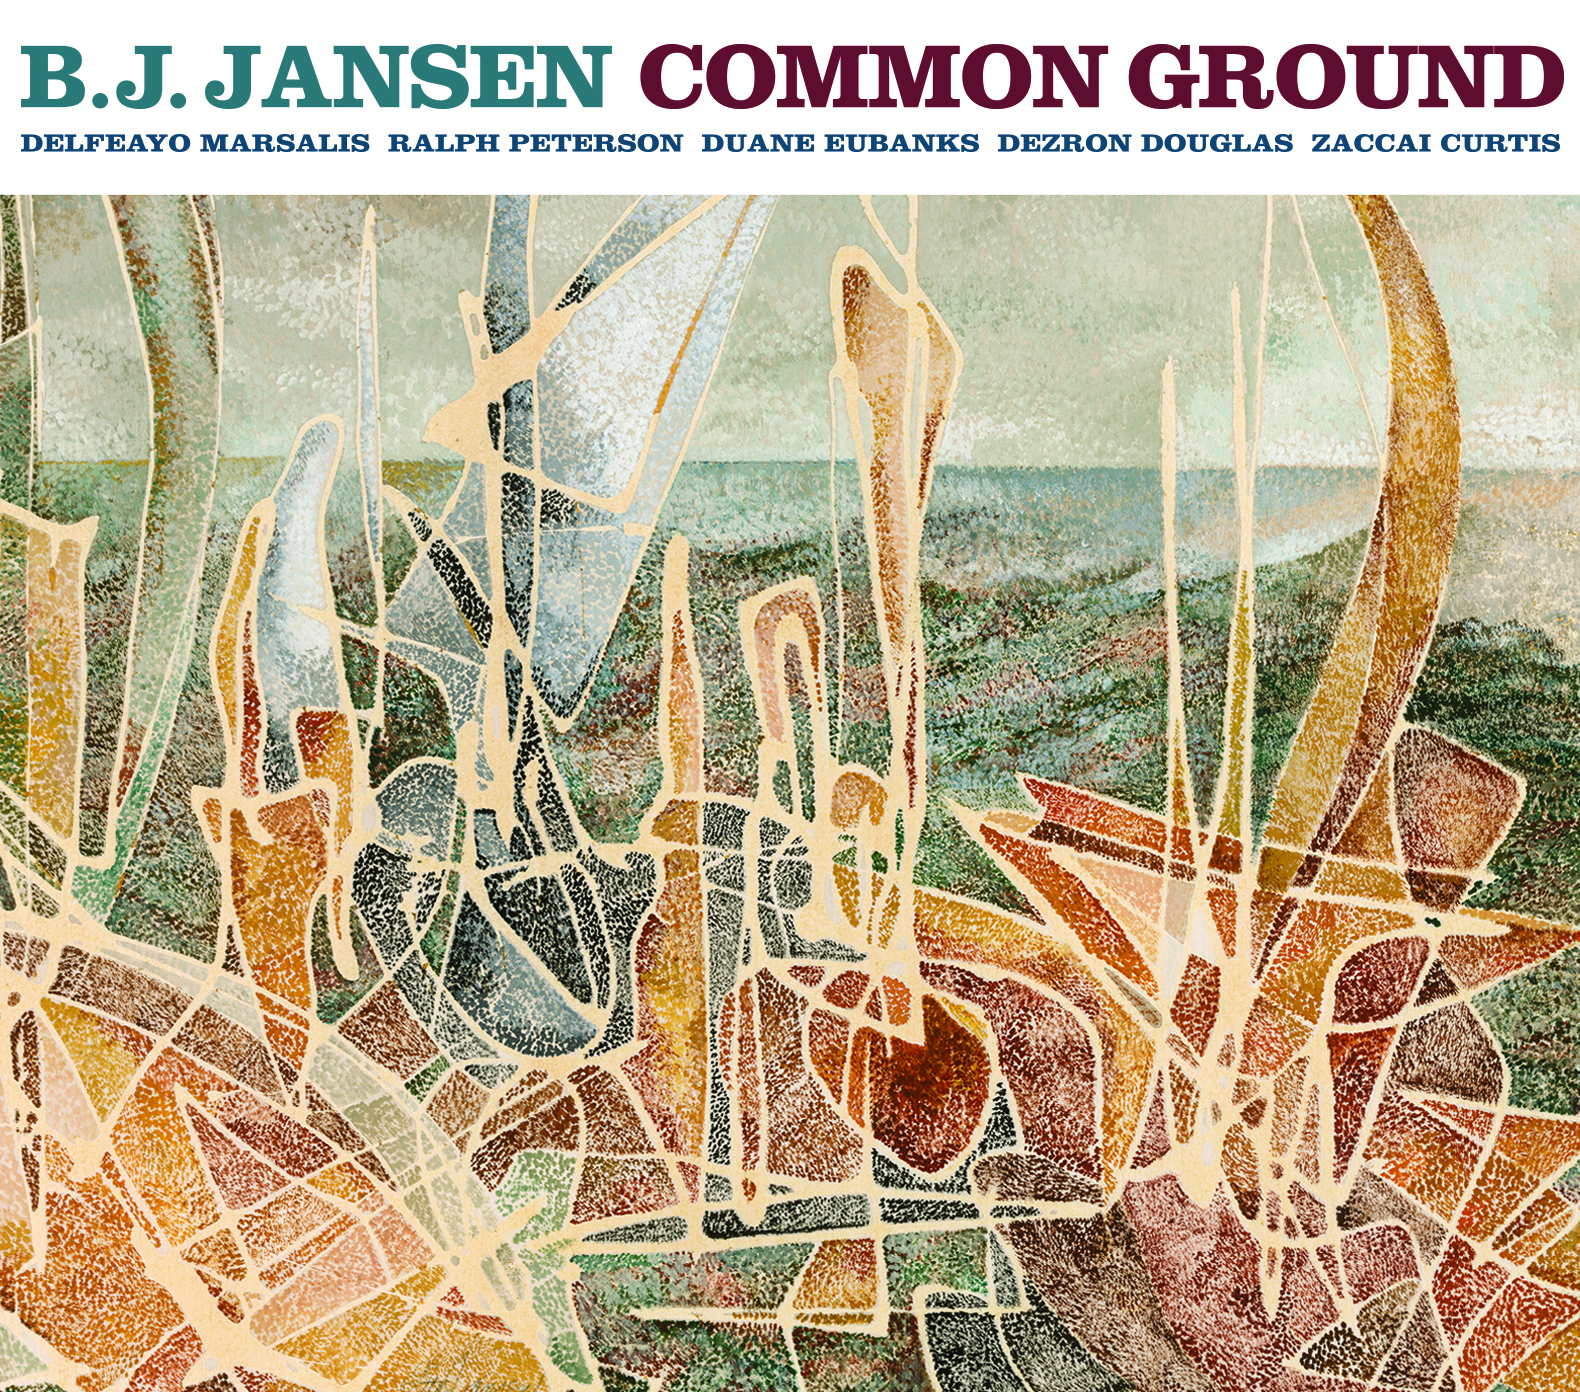 "Respected Baritone Saxophonist B.J. Jansen Emerges with his Tenth Project ""Common Ground"", due out 6/23/17"